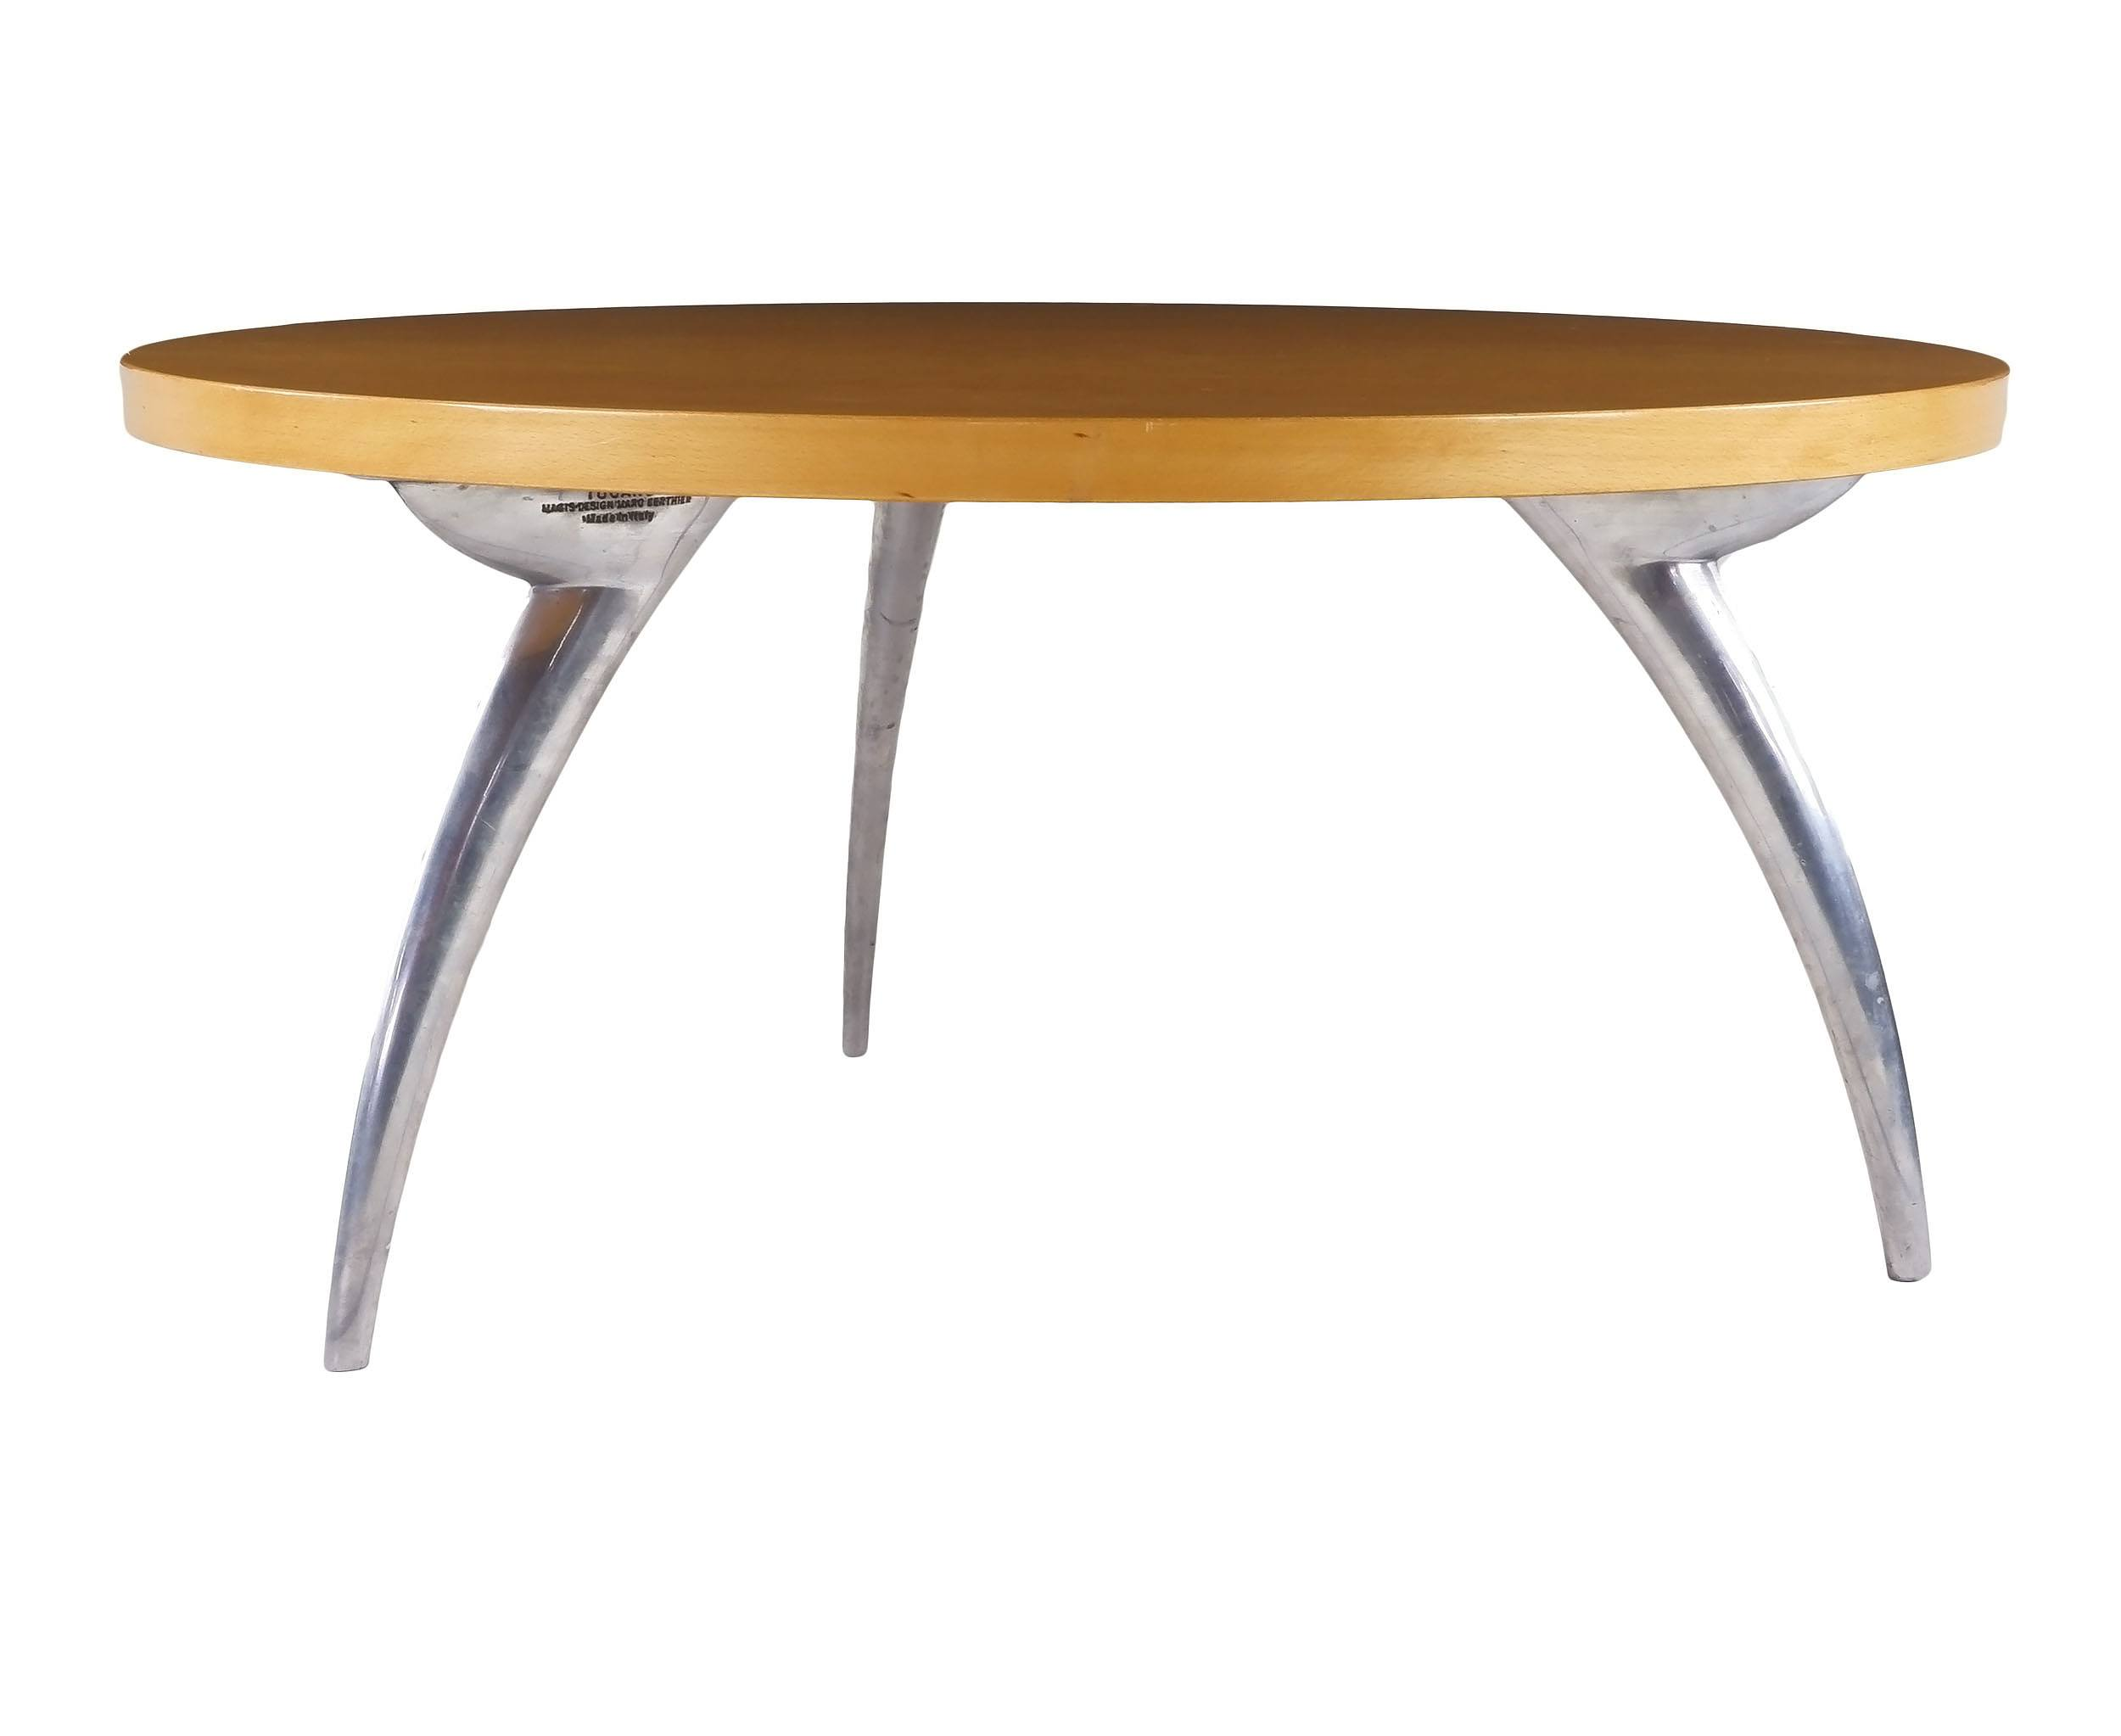 'Tucano Birch Veneer and Cast Aluminium Coffee Table Designed by Marc Berthier for Magis Italy 1990s'